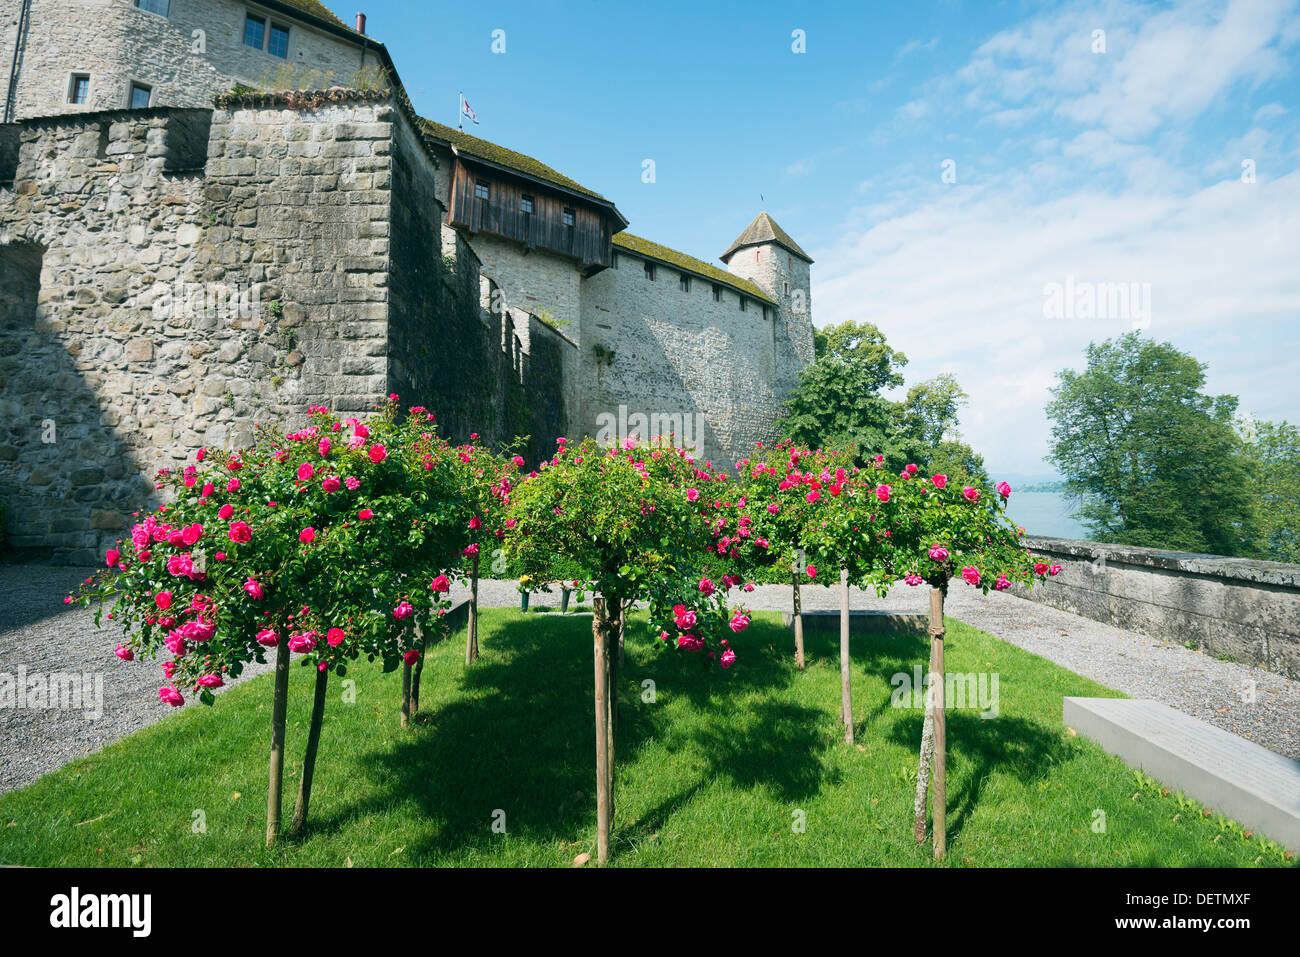 Europe, Switzerland, Rapperswil Jona, 13th century castle - Stock Image